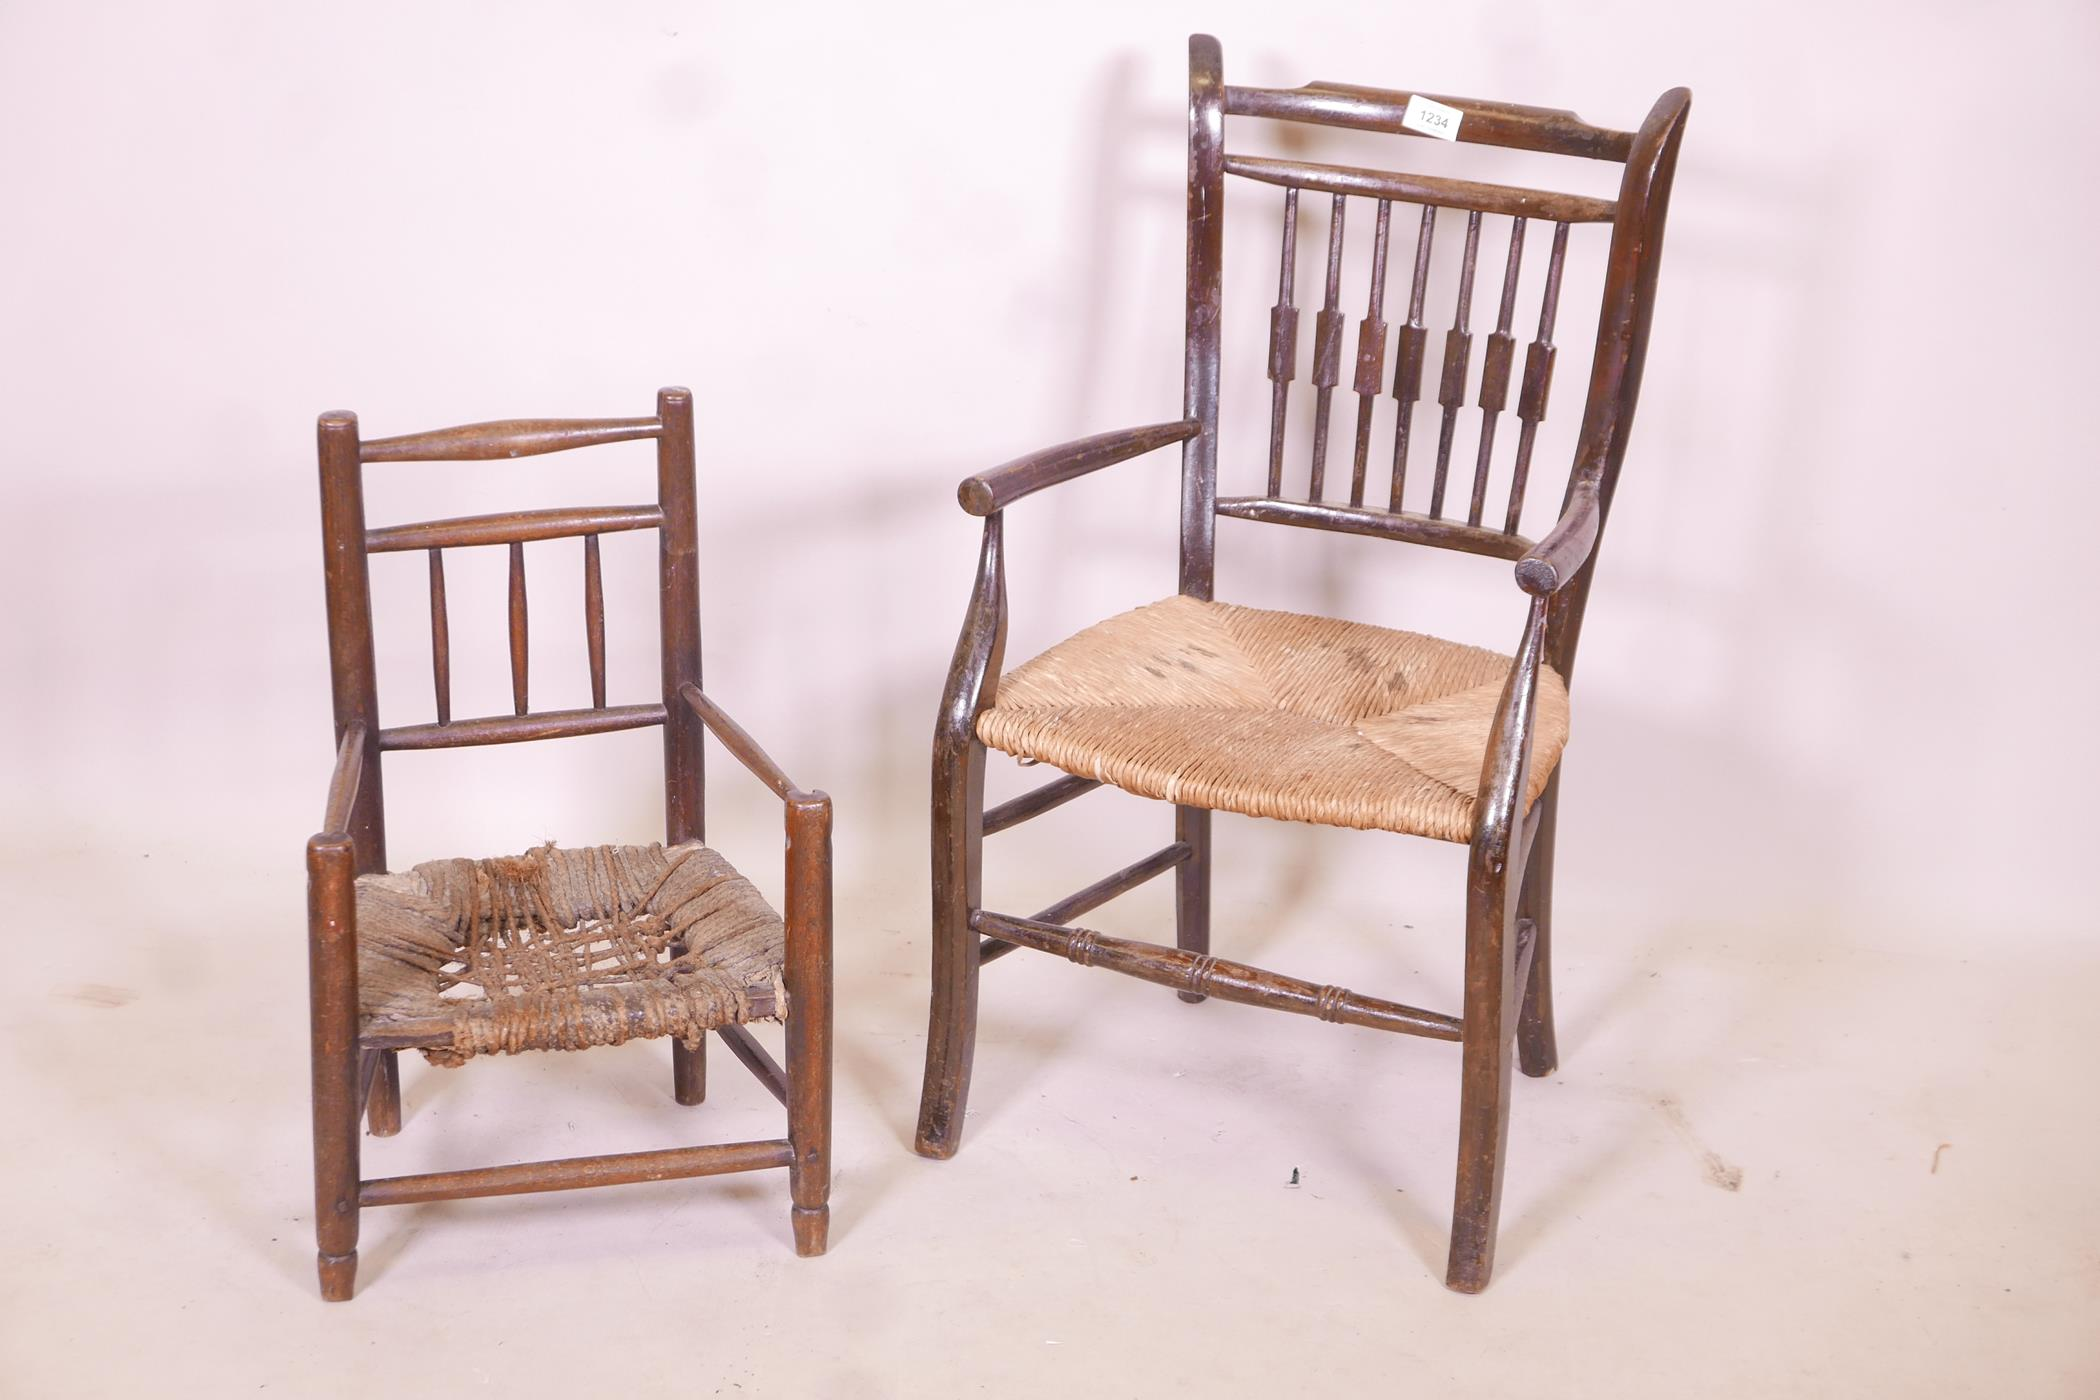 A child's William Morris style rush seated elbow chair, and another smaller